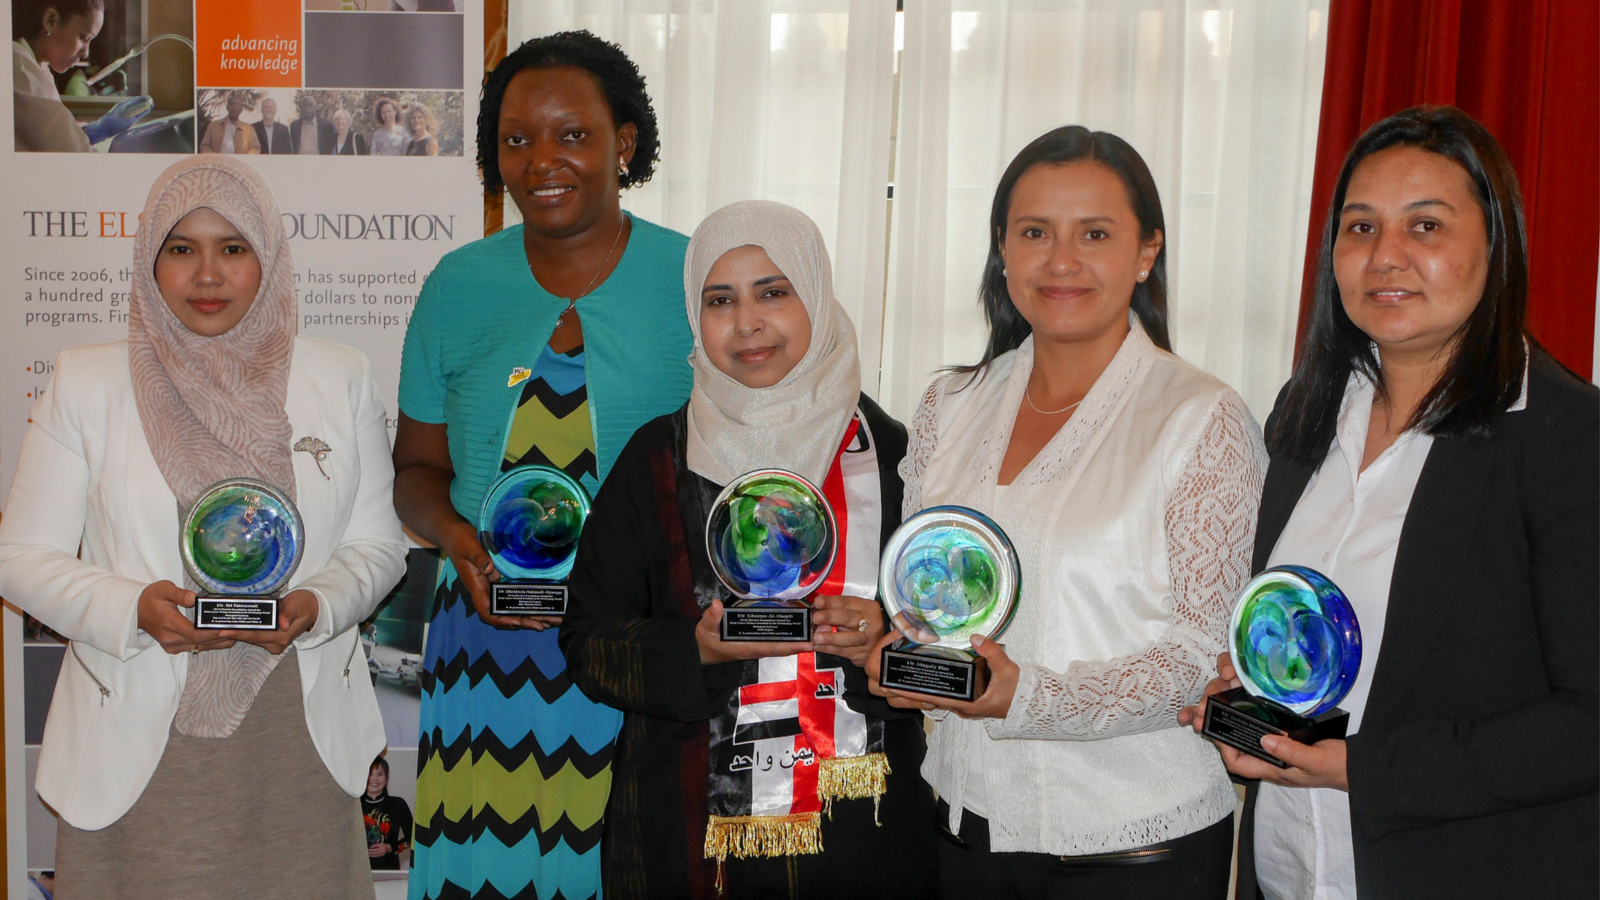 Elsevier Foundation Awards Women Scientists From Developing World at AAAS Annual Meeting